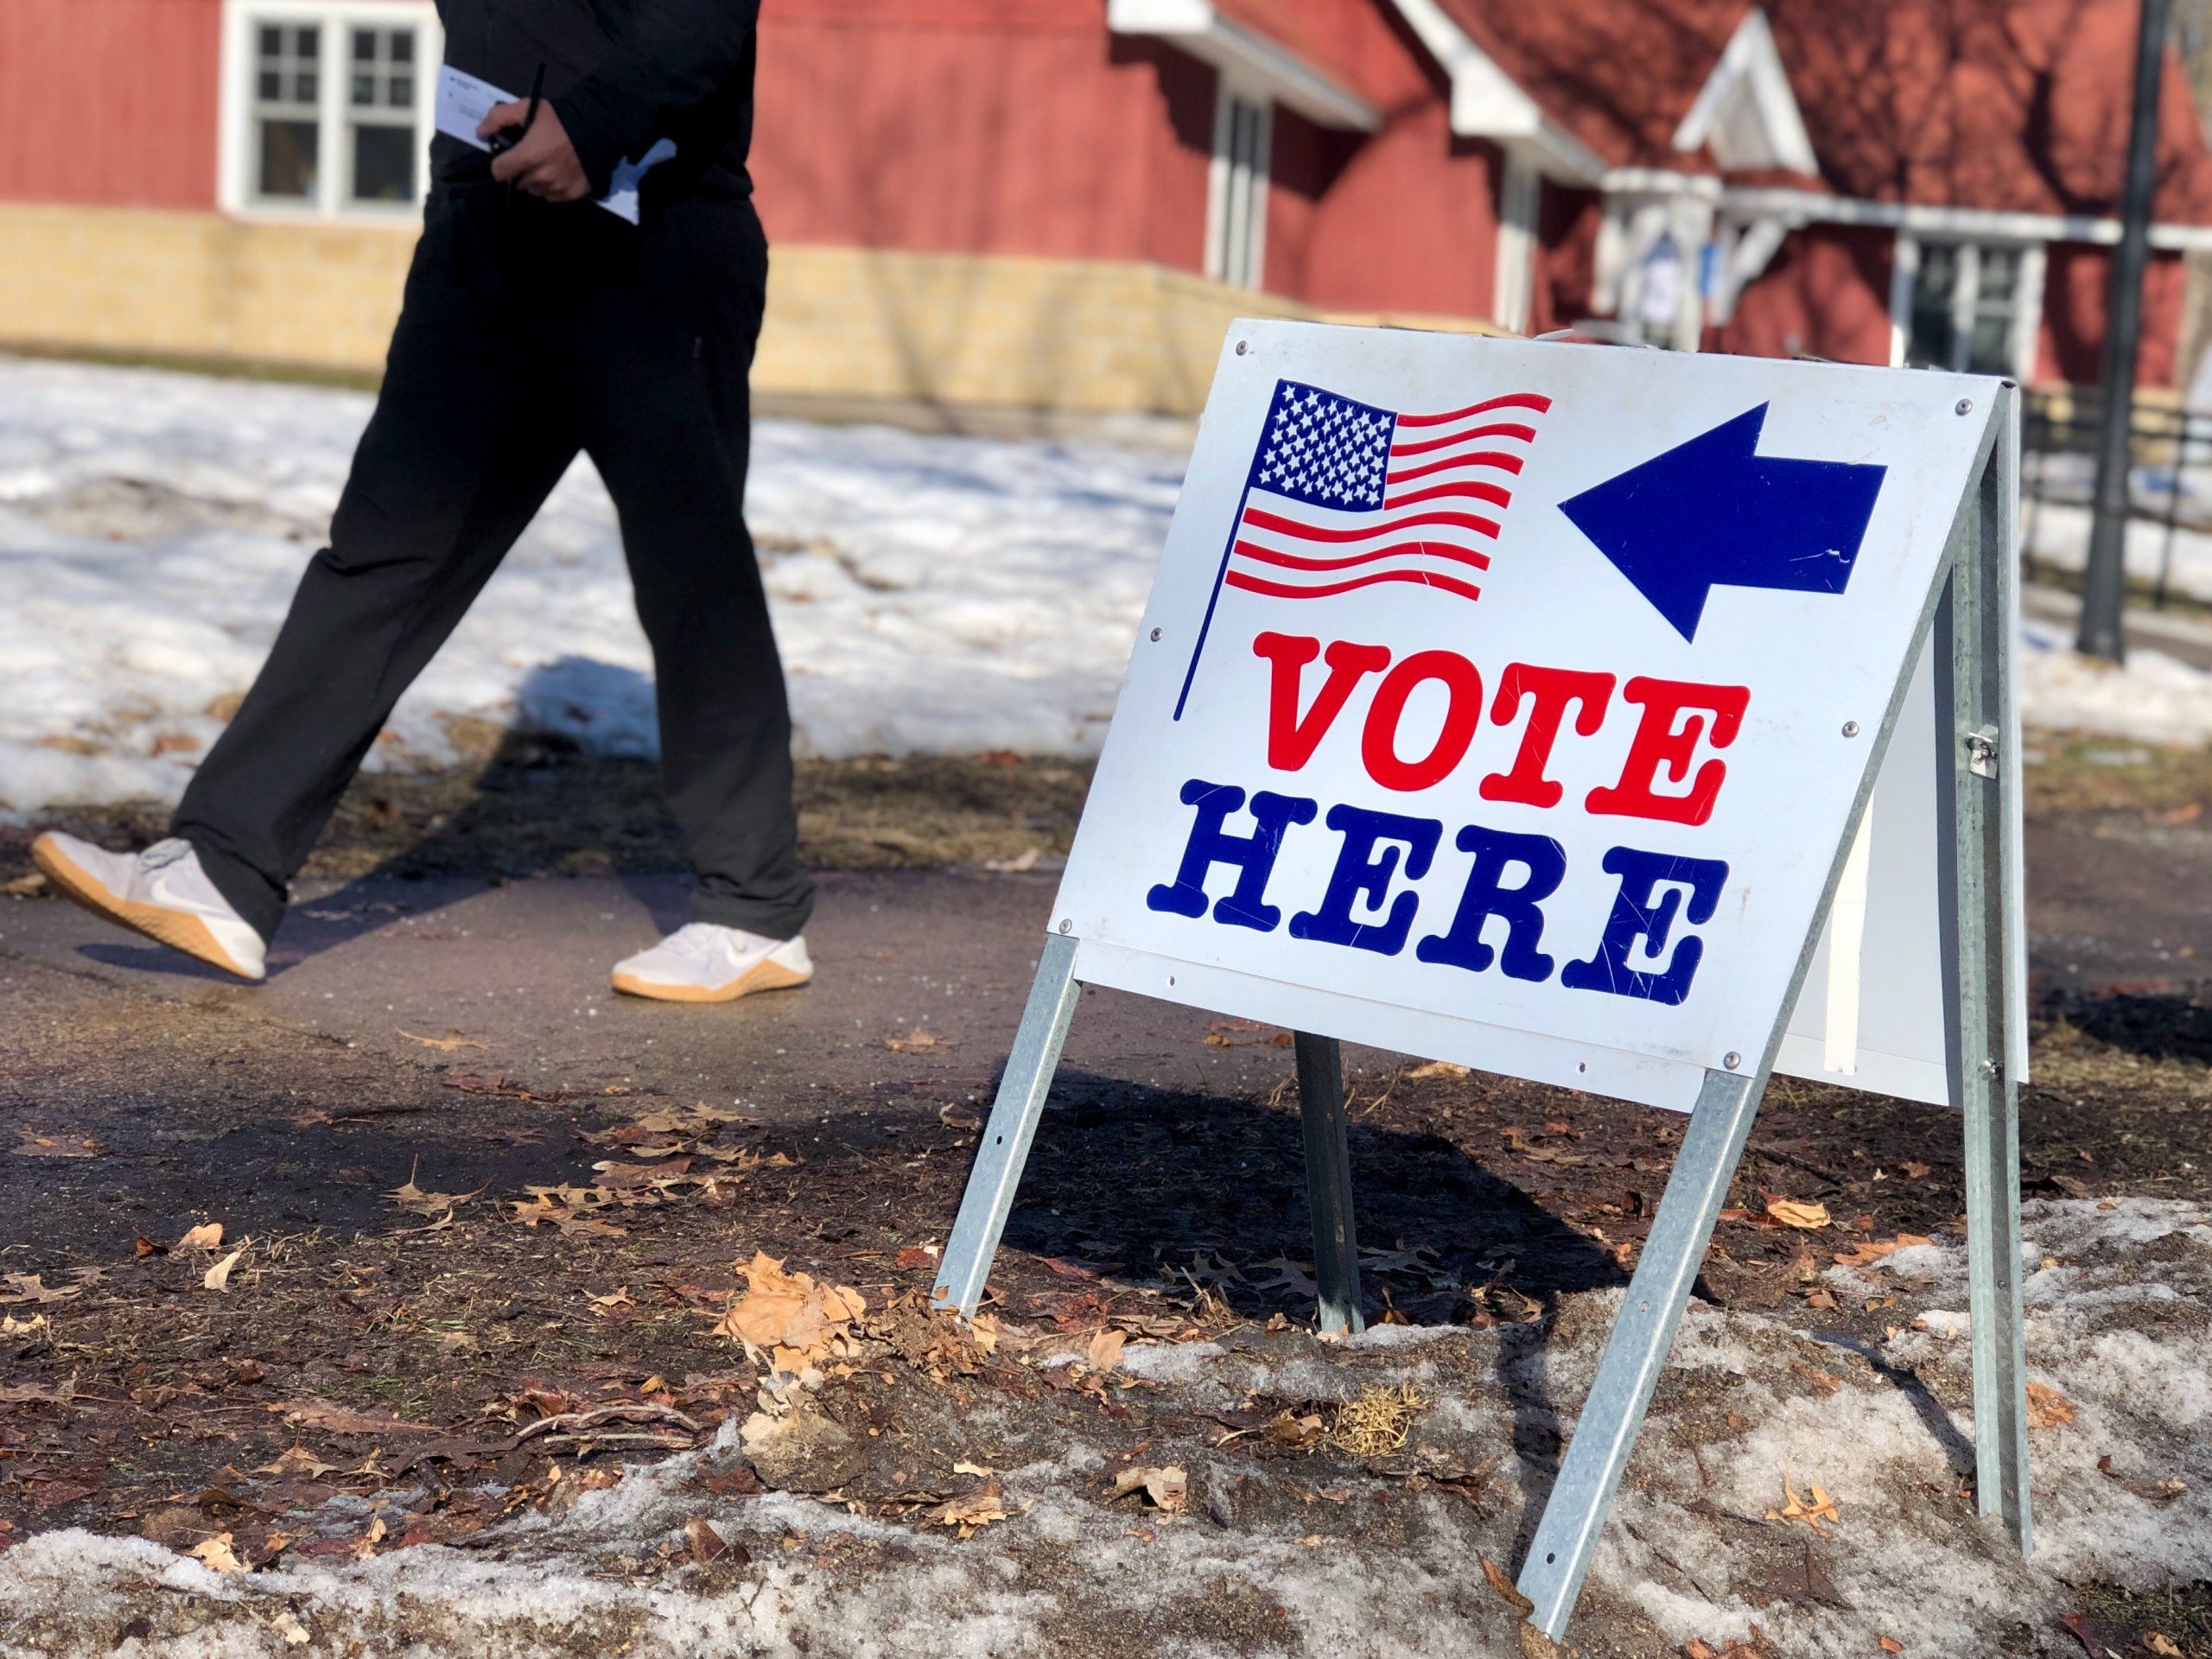 polling place in Minnesota vote here